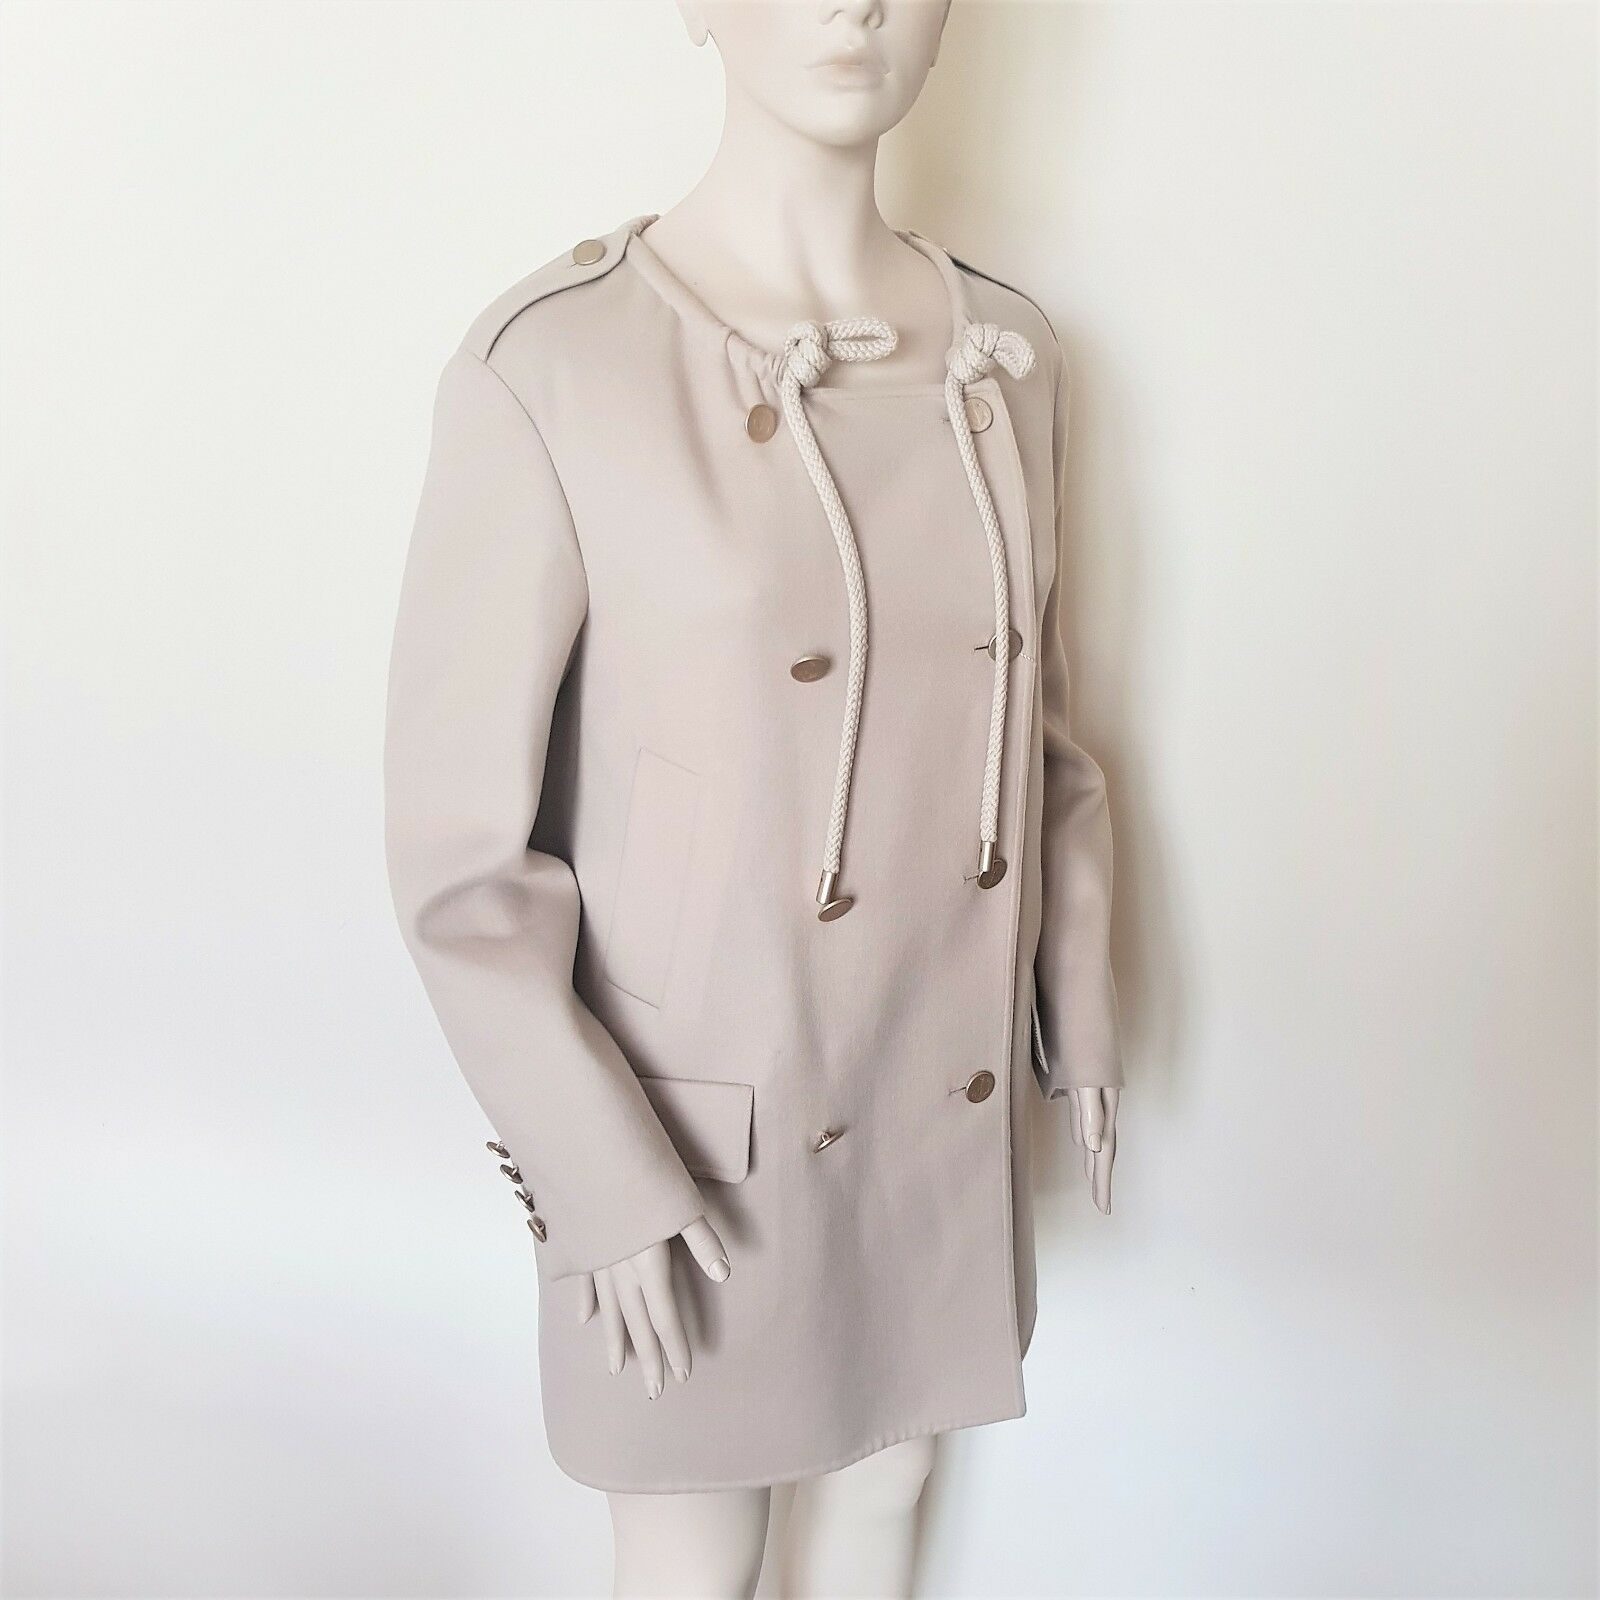 MAX MARA, Beige RUNway kort Pea Coat, Storlek 4 US, 6 GB, 34 DE, 38 IT